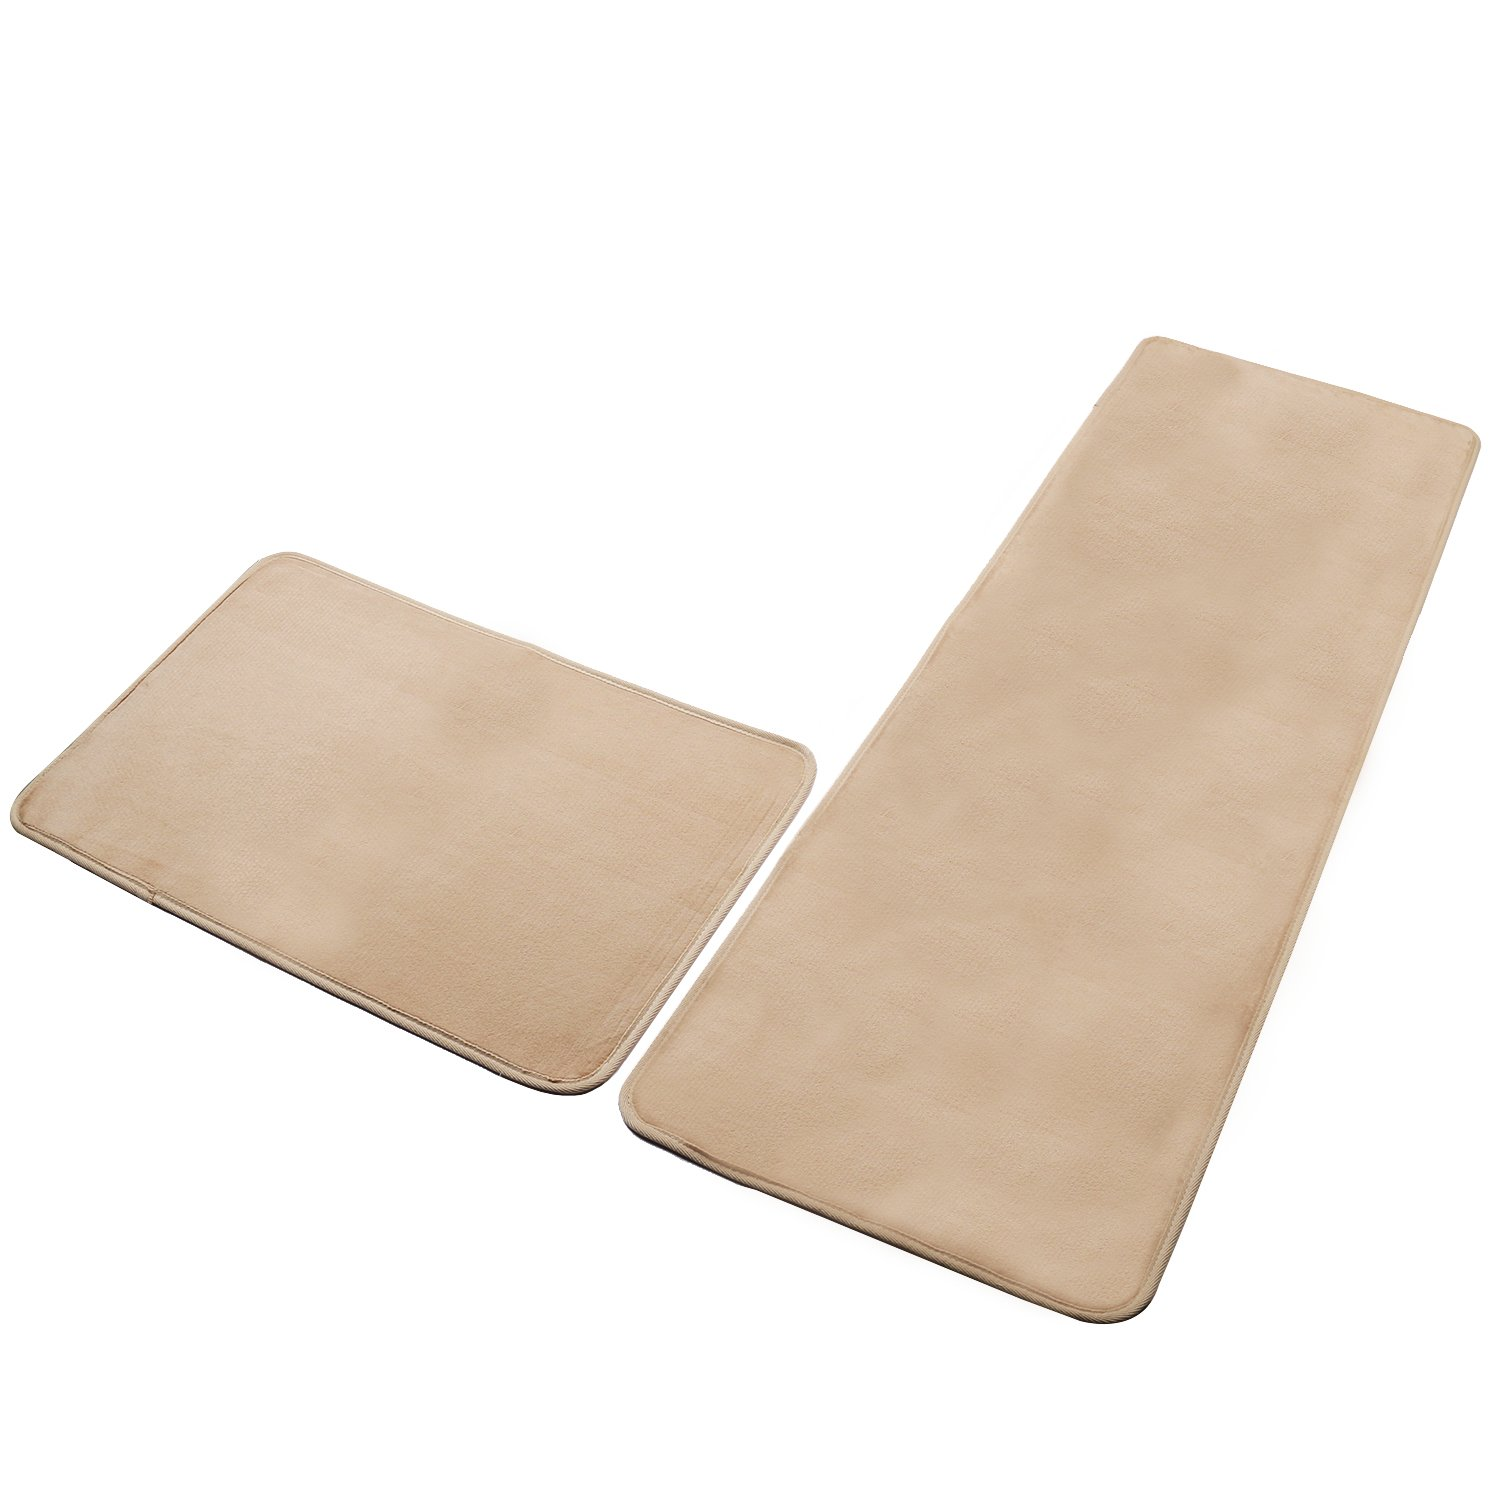 SHACOS Set of 2 Flannel Kitchen Rugs and Mats Rubber Backing Anti-Bacterial and Non-slip Runner Rugs (16×24 inch+16×47inch, Camel)